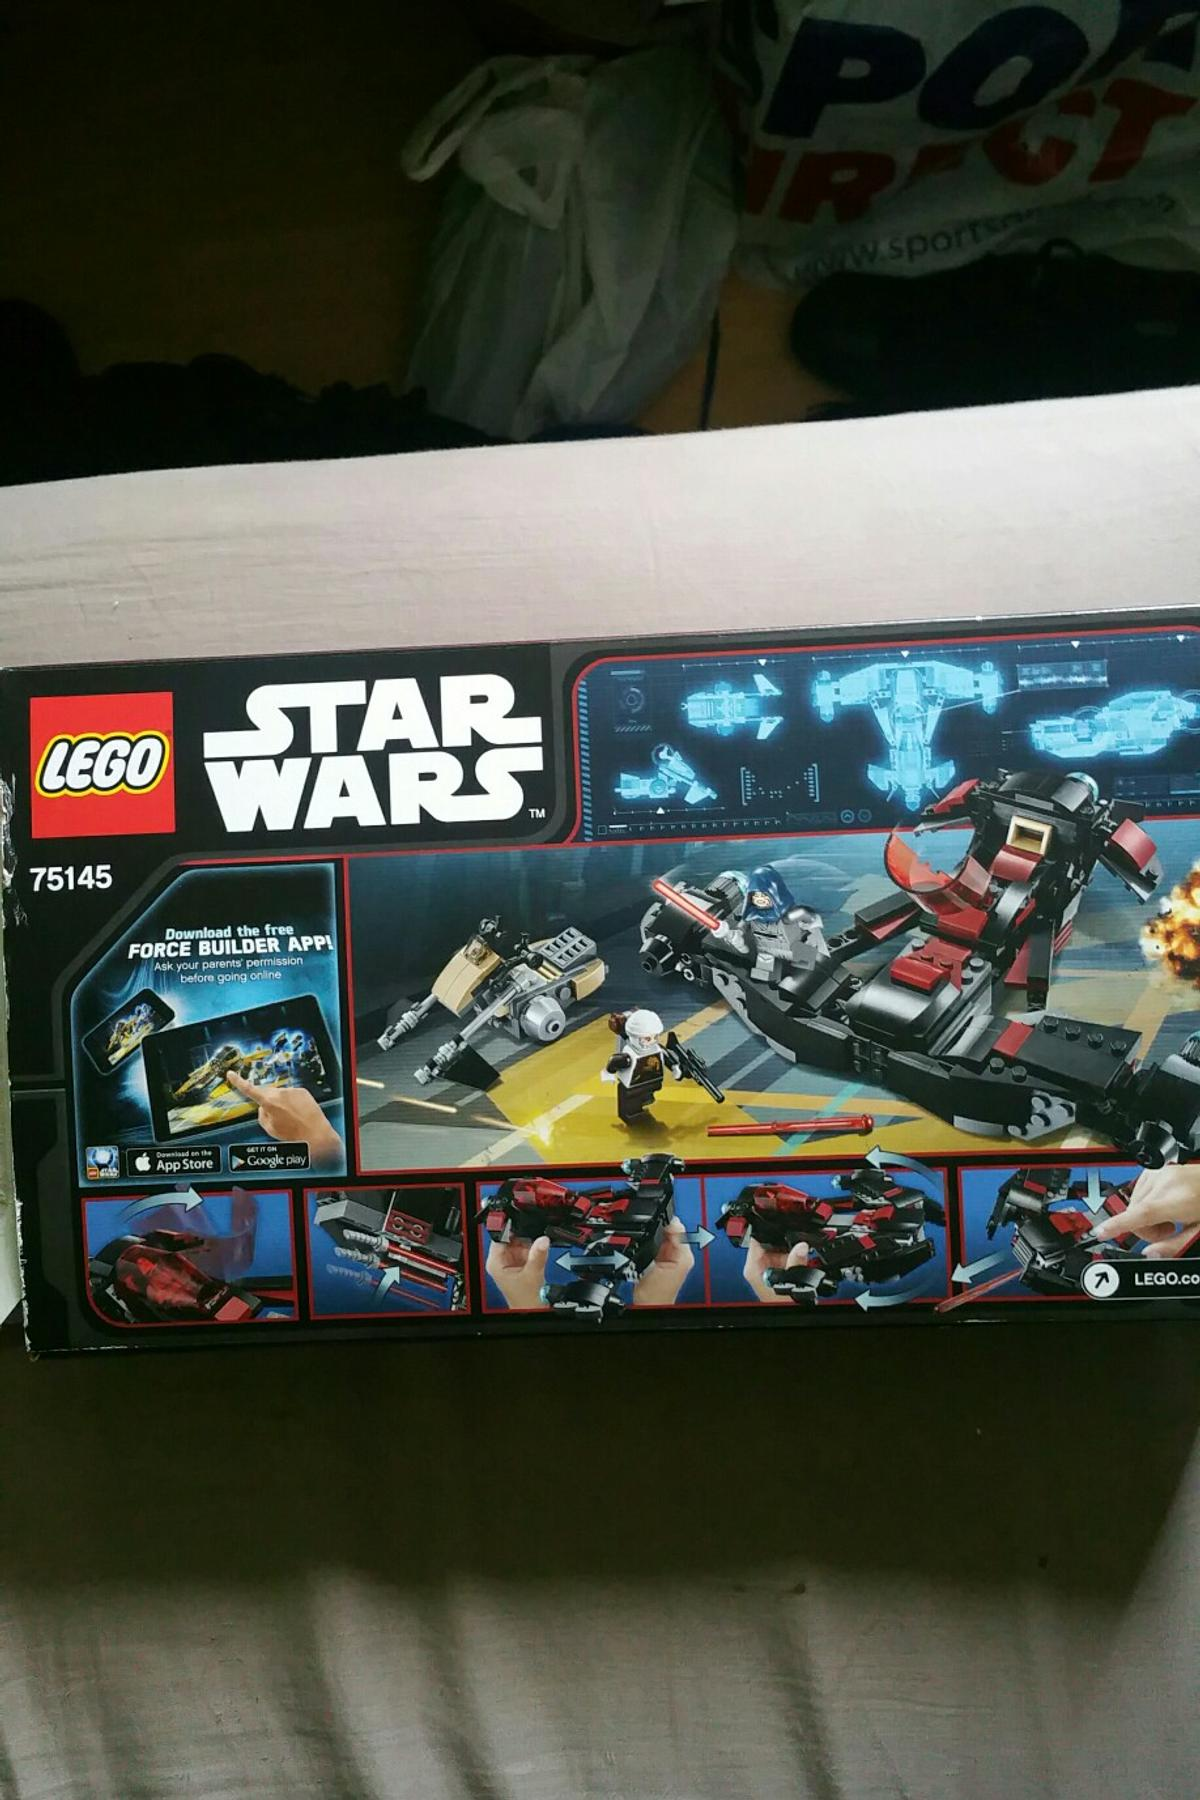 Lego Star Wars Eclipse Fighter In Wc1h Camden For 1500 For Sale